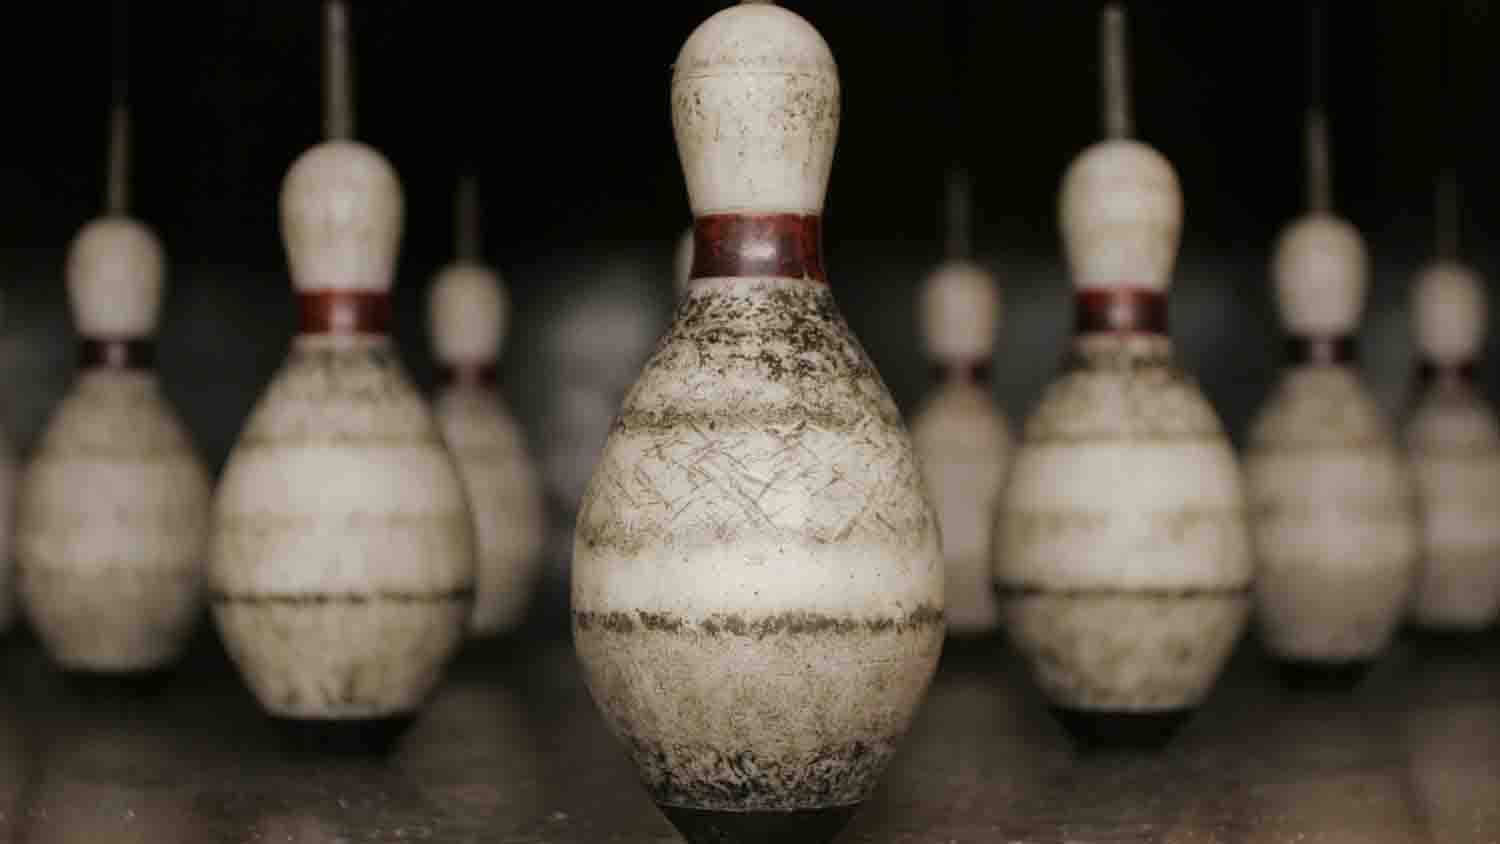 Action Duckpin Bowl & Atomic Bowl Duckpin 4